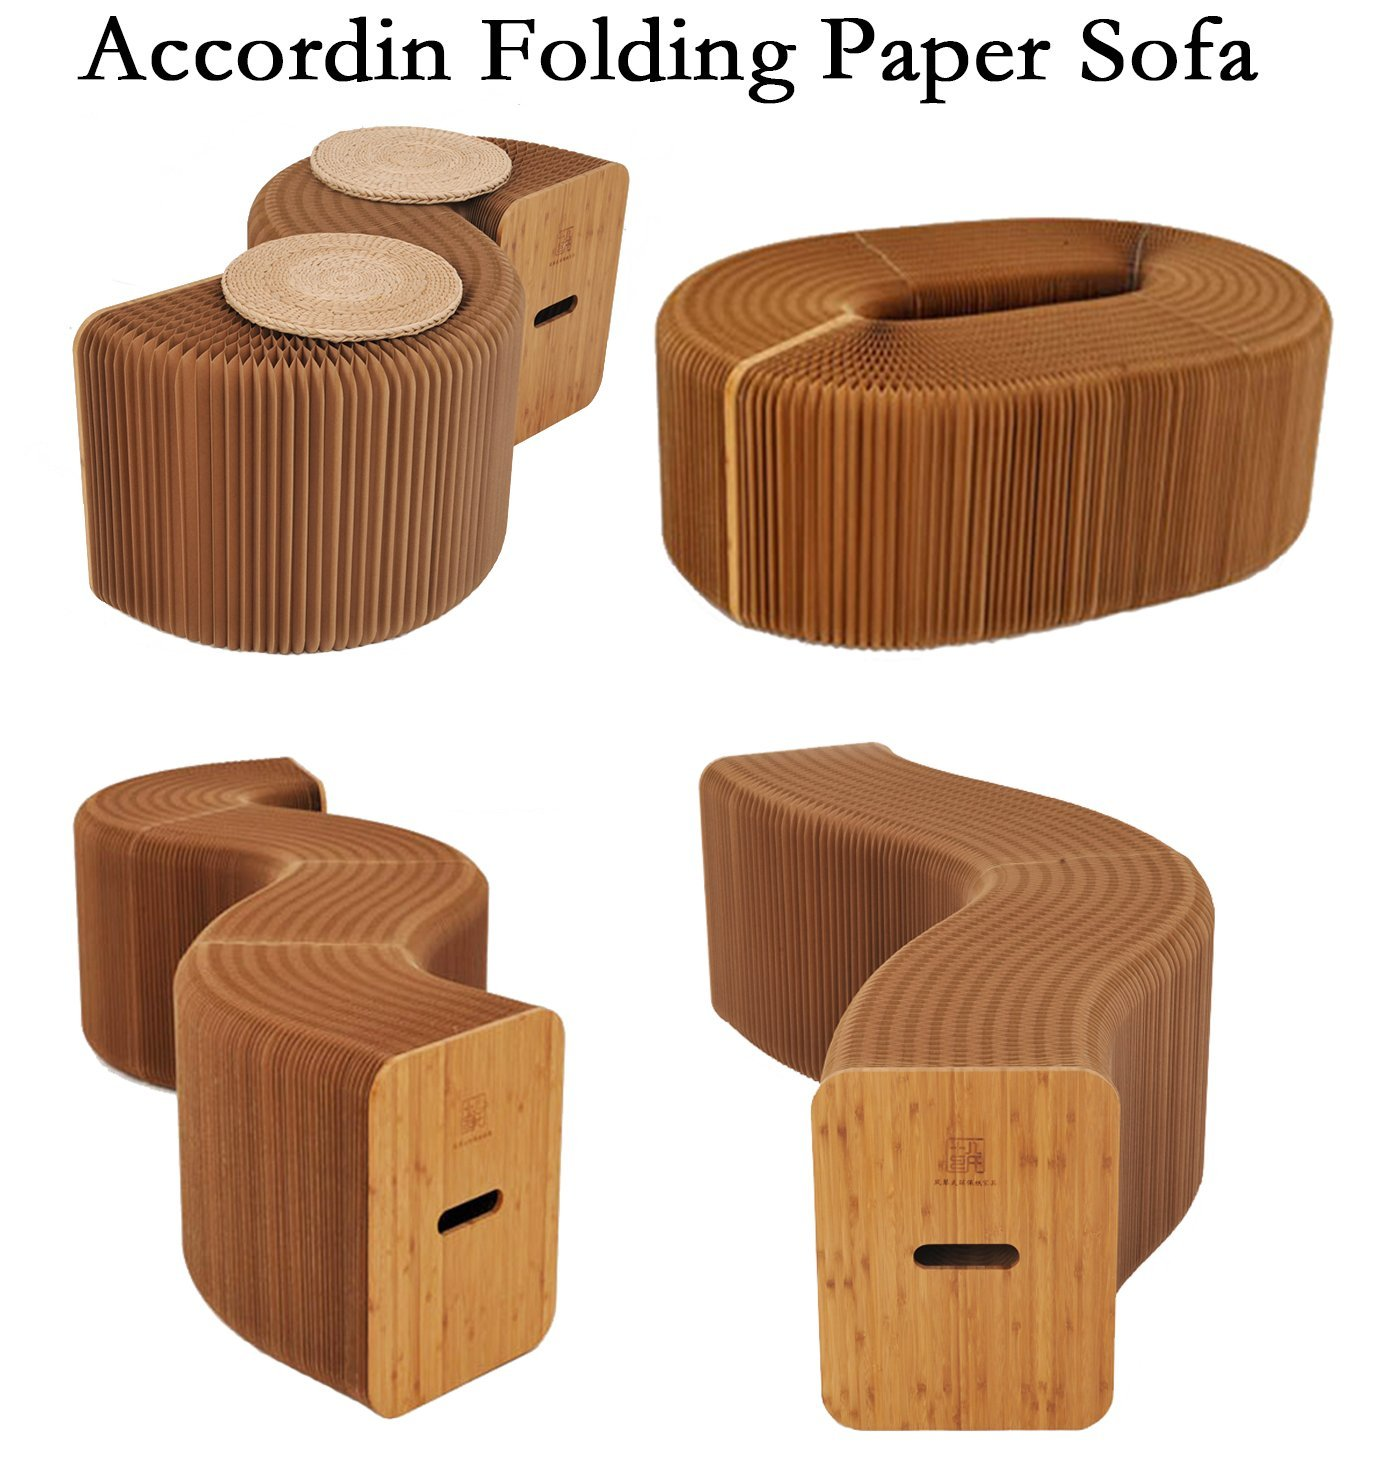 Home Furniture Softeating Modern Design Accordin Folding Paper Stool Sofa Chair Kraft Paper Relaxing Foot  living & Dining Room electric professional nail art drill machine manicure pedicure pen tool set kit